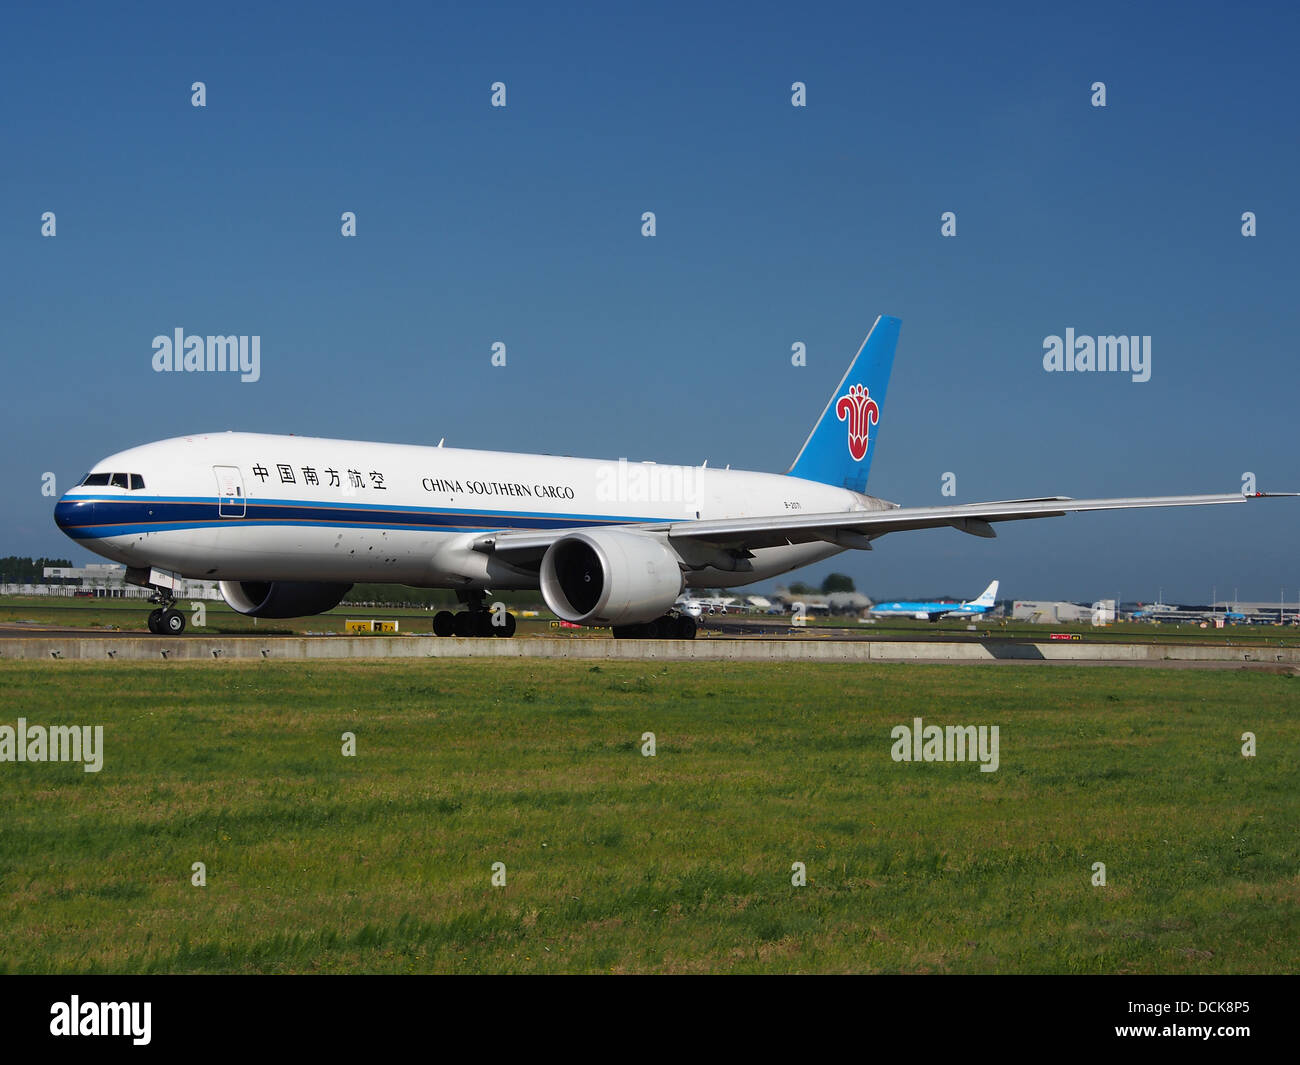 B-2071 China Southern Airlines Boeing 777-F1B - cn 37309 taxiing 18july2013 pic-002 - Stock Image